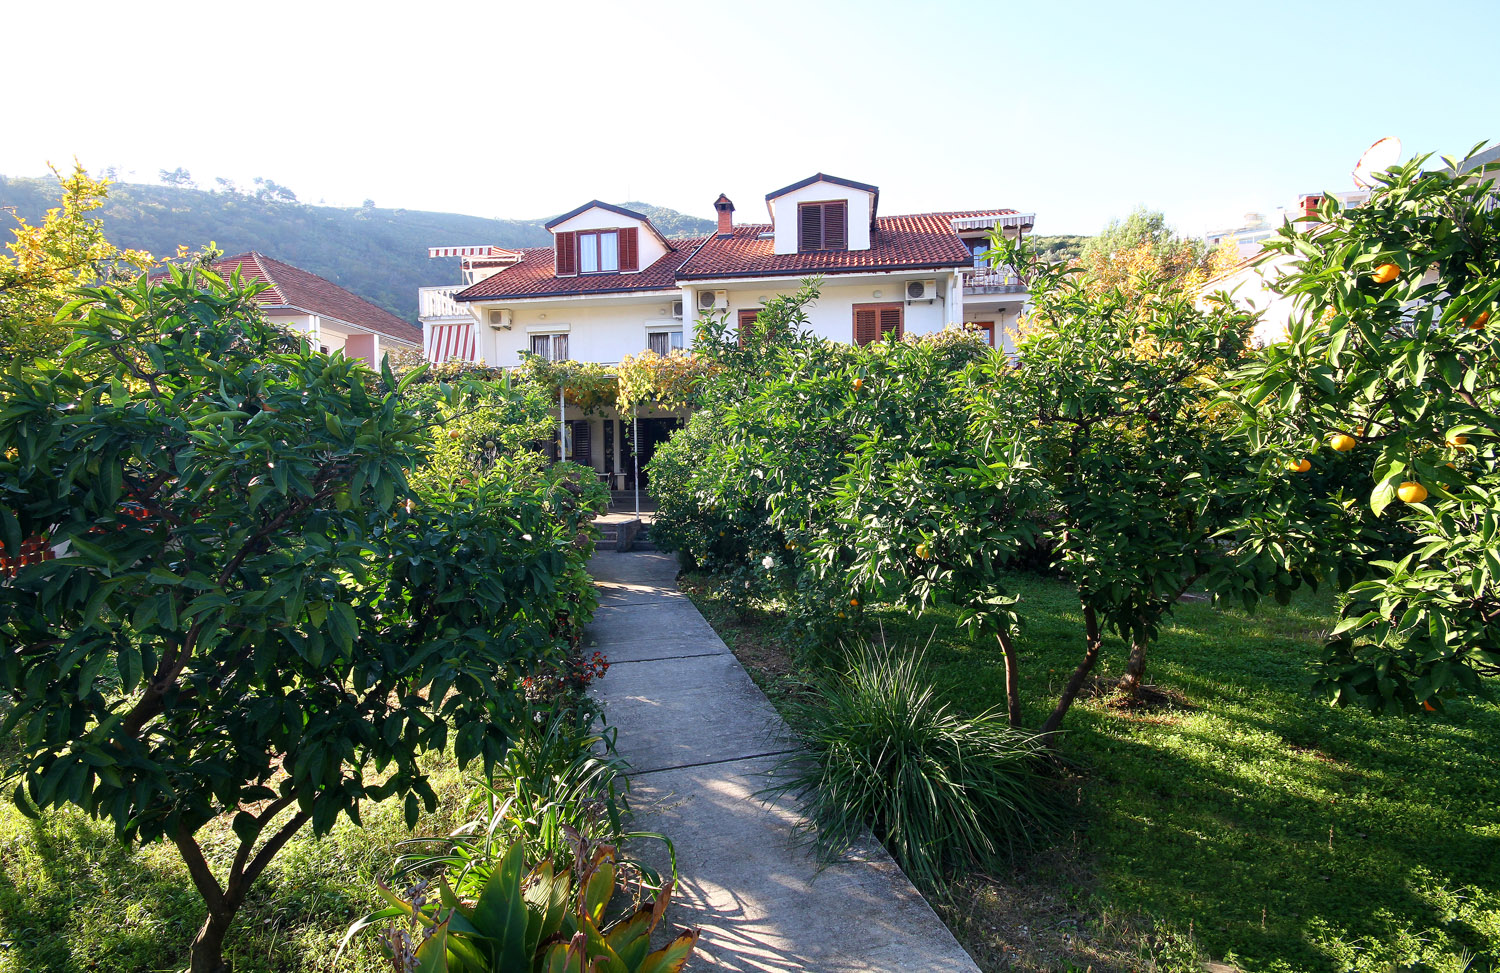 Apartments Markovic Centar 2 Apartments Markovic Centar 2 Budva | Montenegro | Cipa Travel